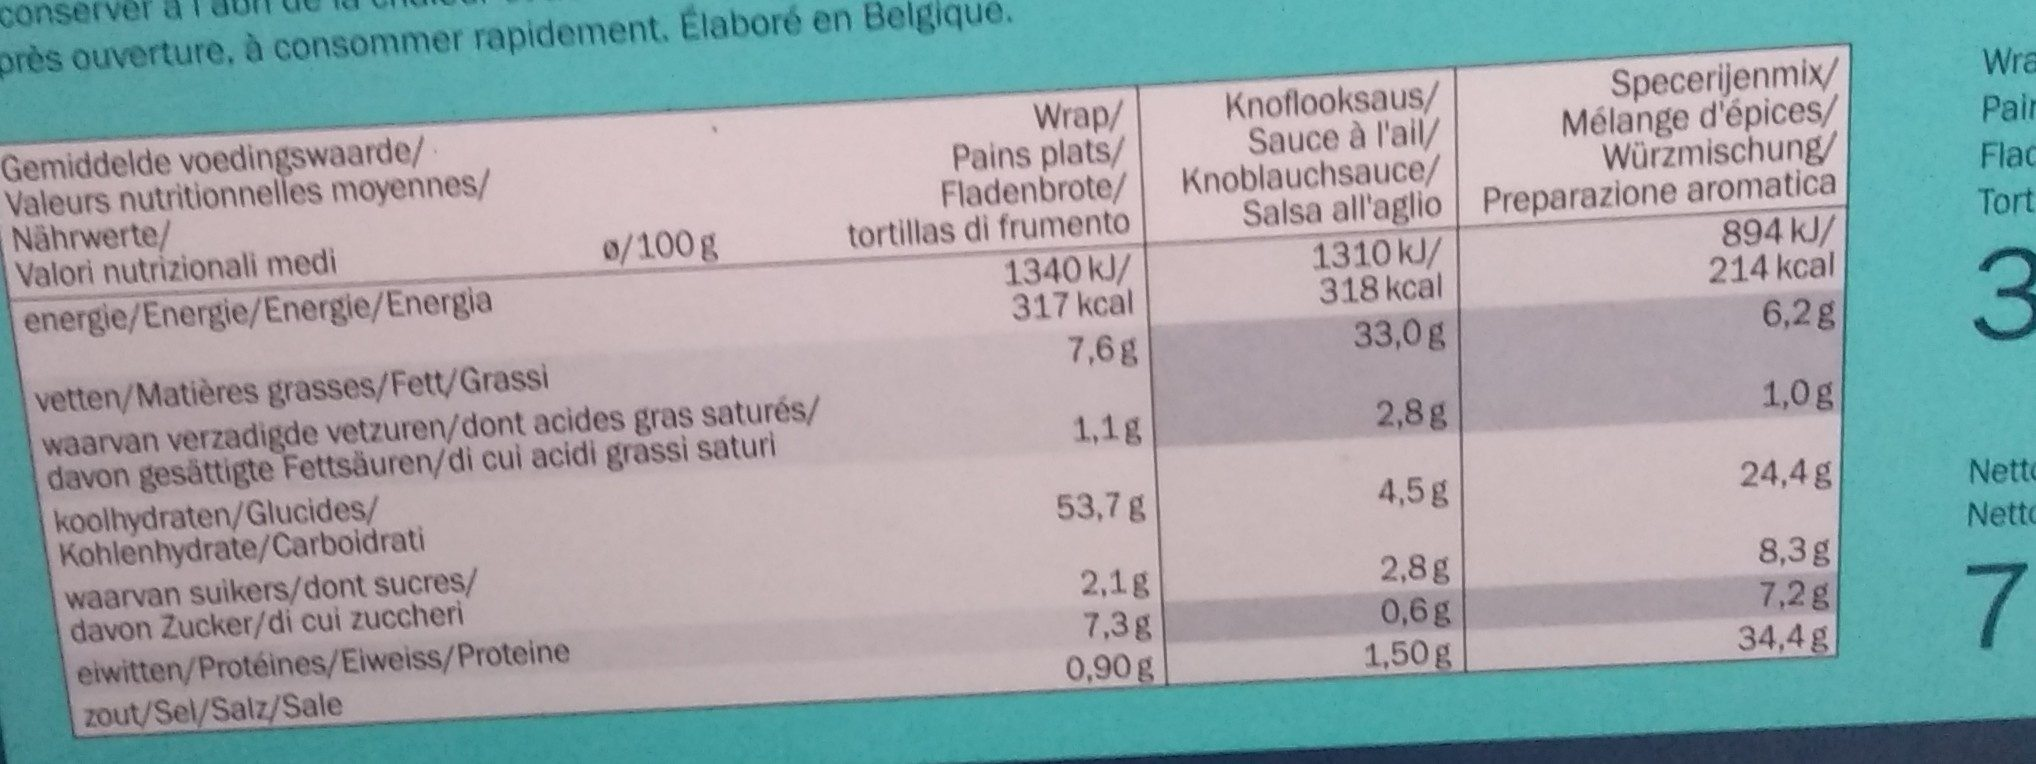 Kebab dinner kit - Nutrition facts - fr